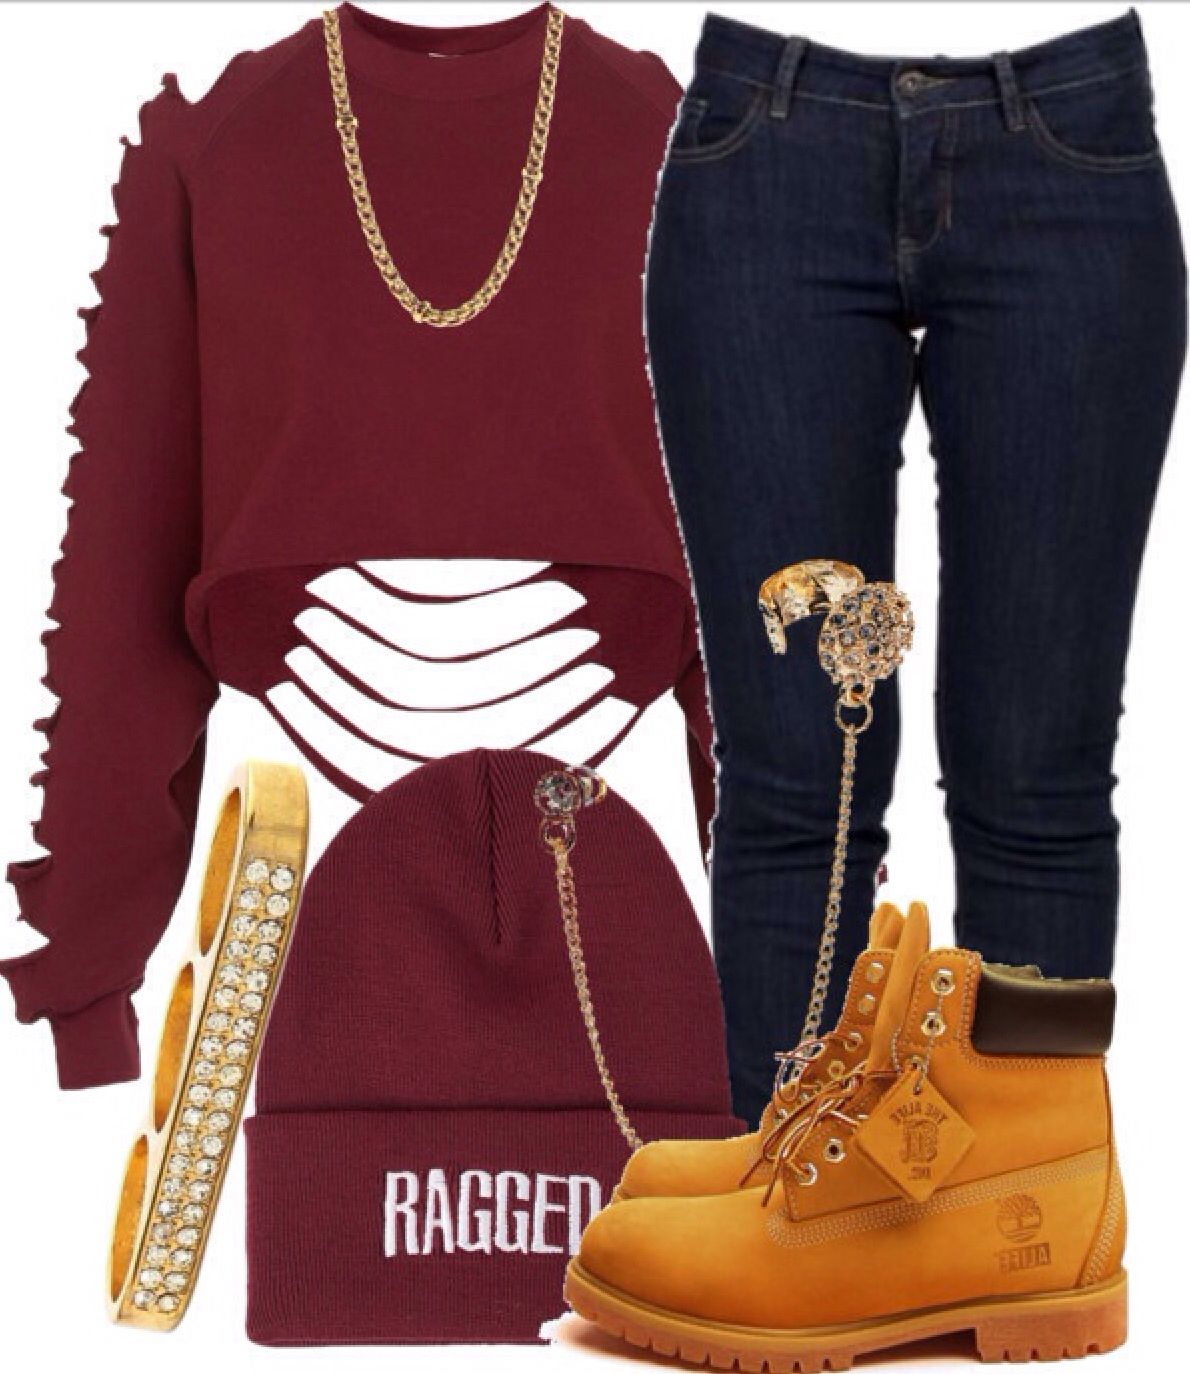 e7c30995b 22 Cute Outfits to Wear with Timberland Boots For Girls | Clothes ...